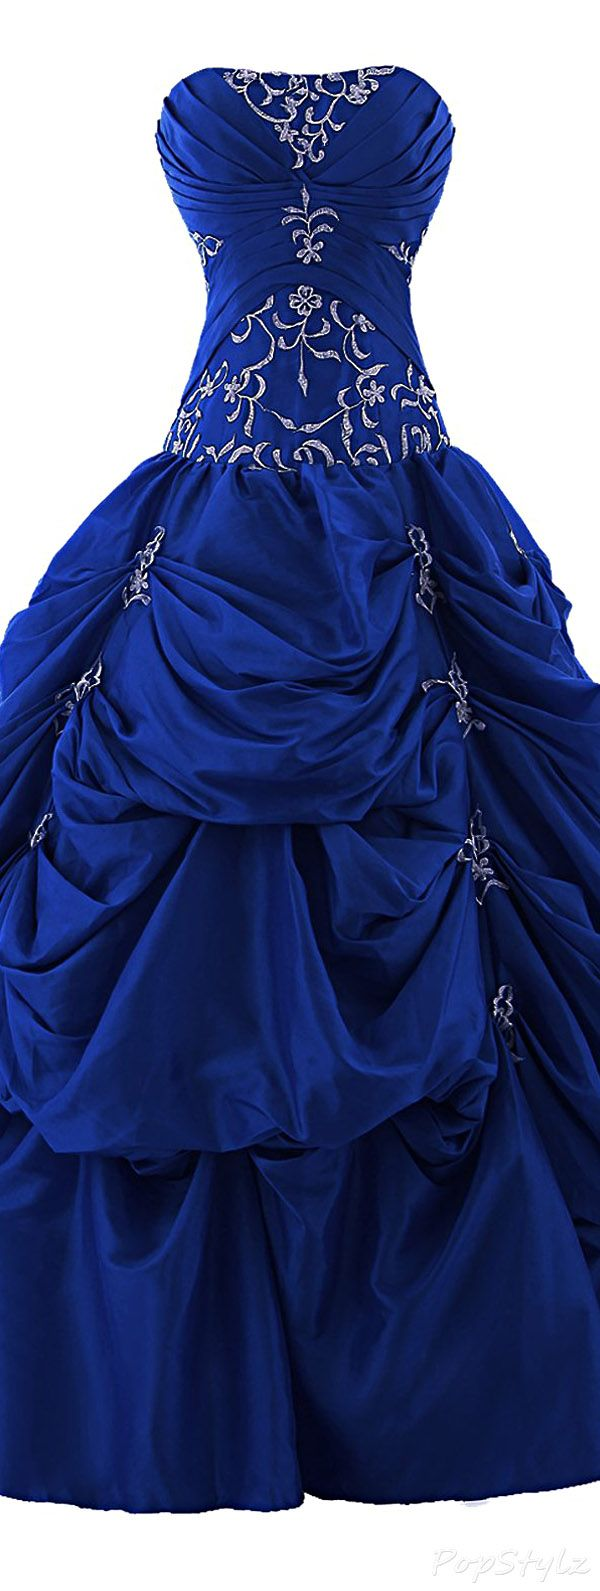 Sunvary long appliqued strapless ruffled ball gown masquerade ball